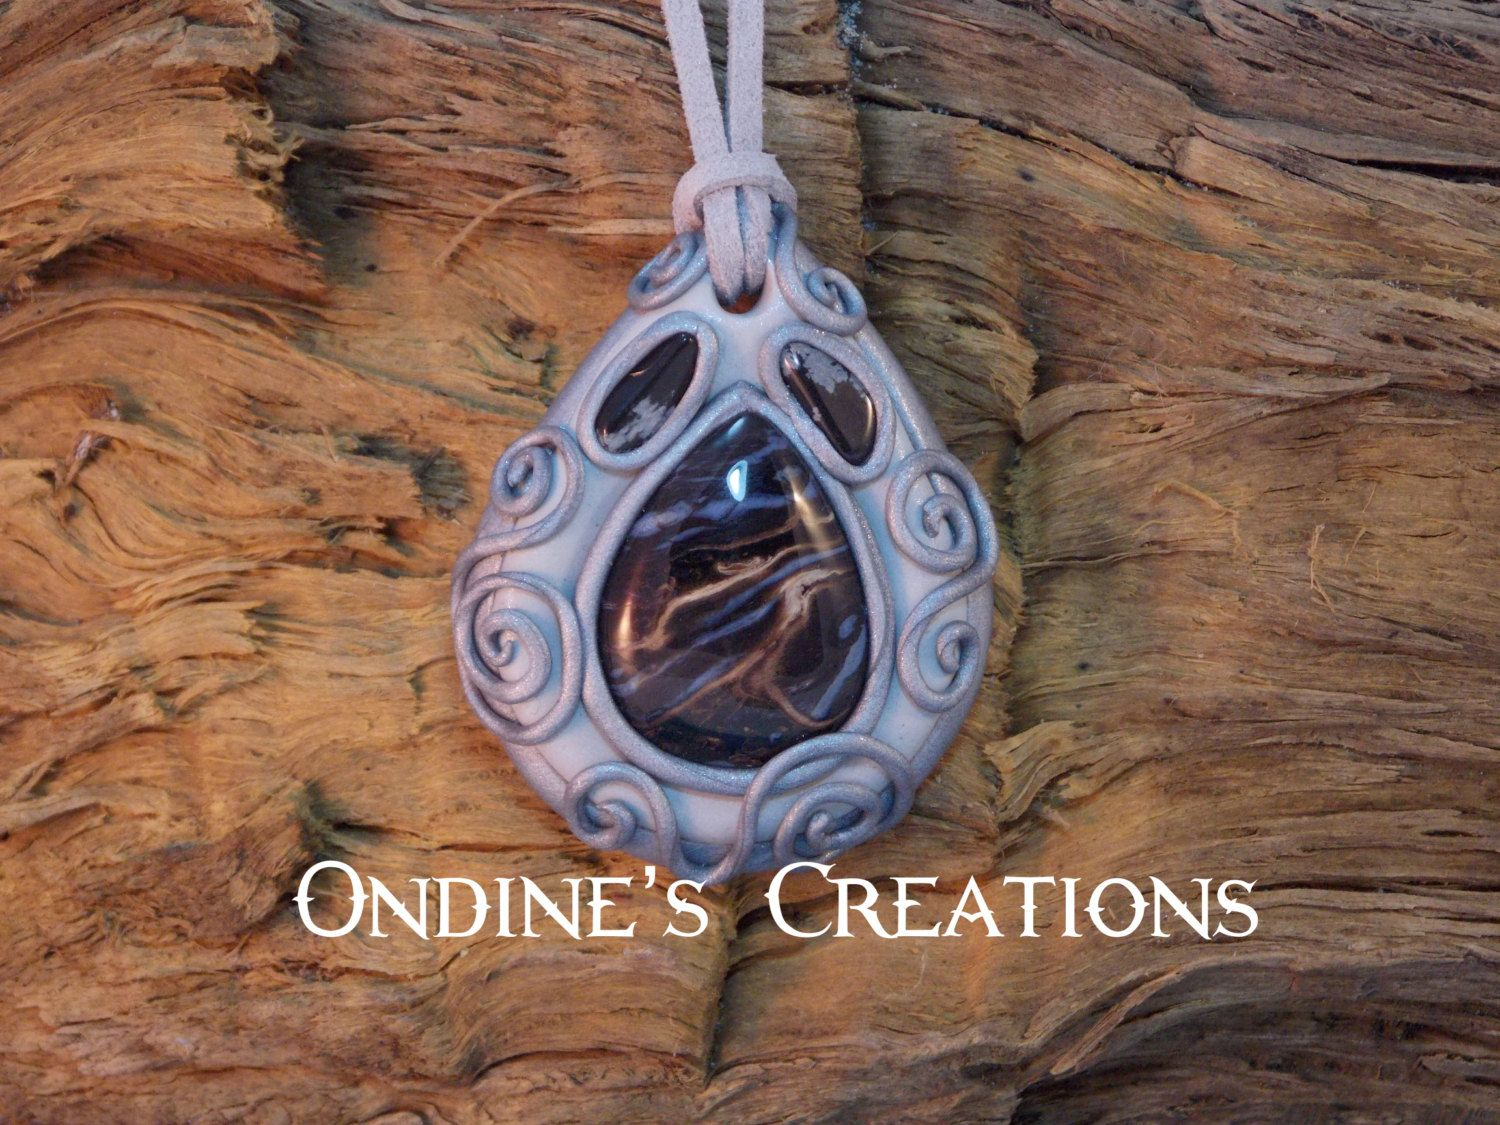 Ondines Creations Clay Pendant   Petrified Palm Wood Agate, Snowflake Obsidian Crystal Mineral Healing Stone Hand Crafted Pendant  #152 by OndinesCreations on Etsy